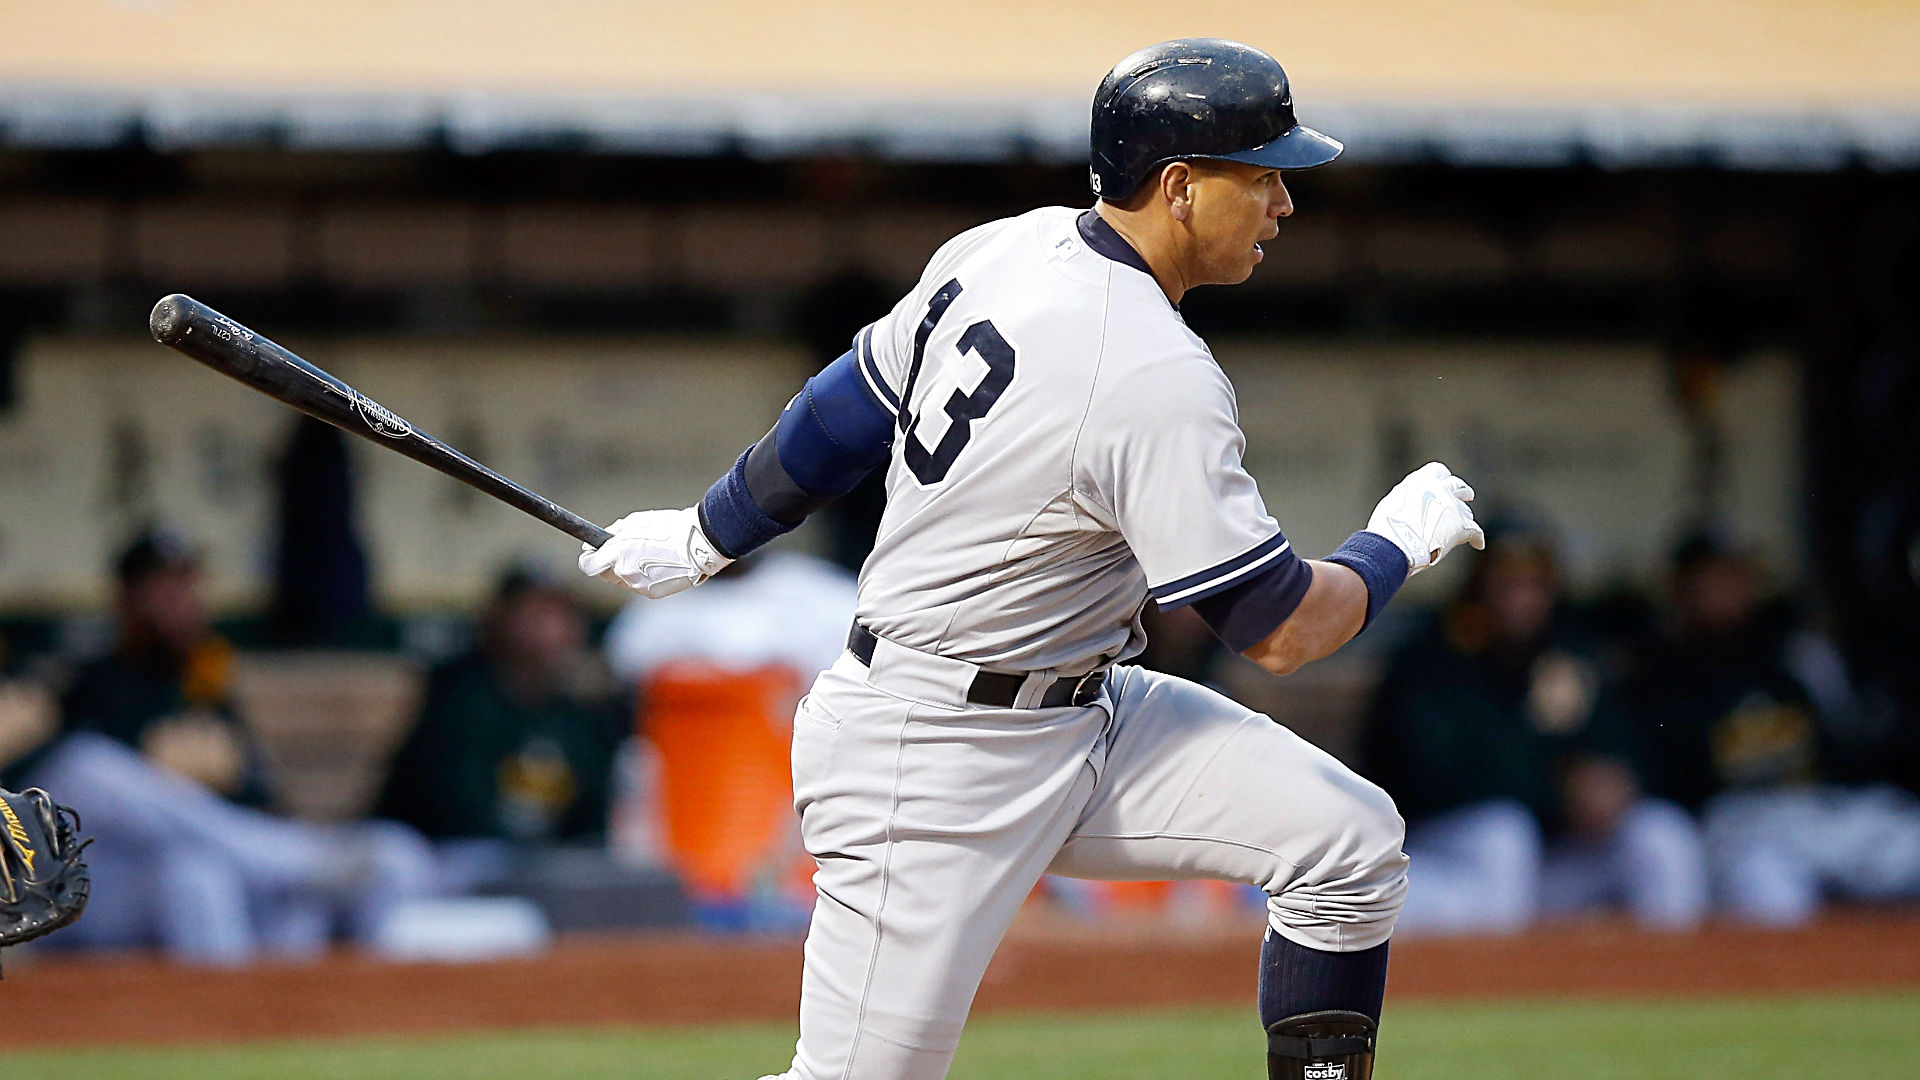 Alex Rodriguez ties Barry Bonds for second on all-time RBI list